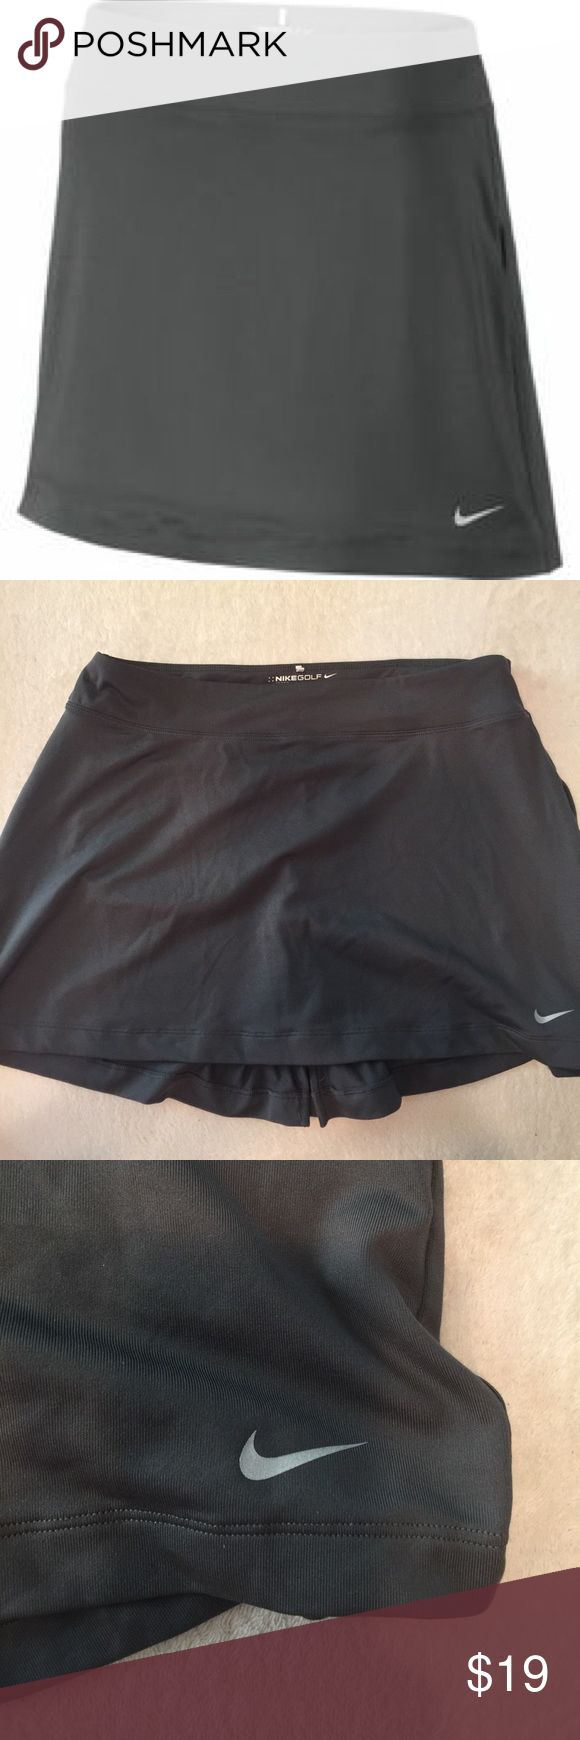 Nike Grey Knit Skirt Skort - Detachable Shorts The Women's Sport Knit Skort from Nike is designed with a modern-rise stretch skirt with a wide waistband for style and comfort. Removable compression shorts offer a snug, locked-in feel. The short also has a lined inseam gusset for support and natural range of motion. Equipped with Dri-Fit technology, it wicks away moisture for rapid evaporation keeping you cool.  Flat seams to help minimize irritation caused by chafing. Back zip pocket for…